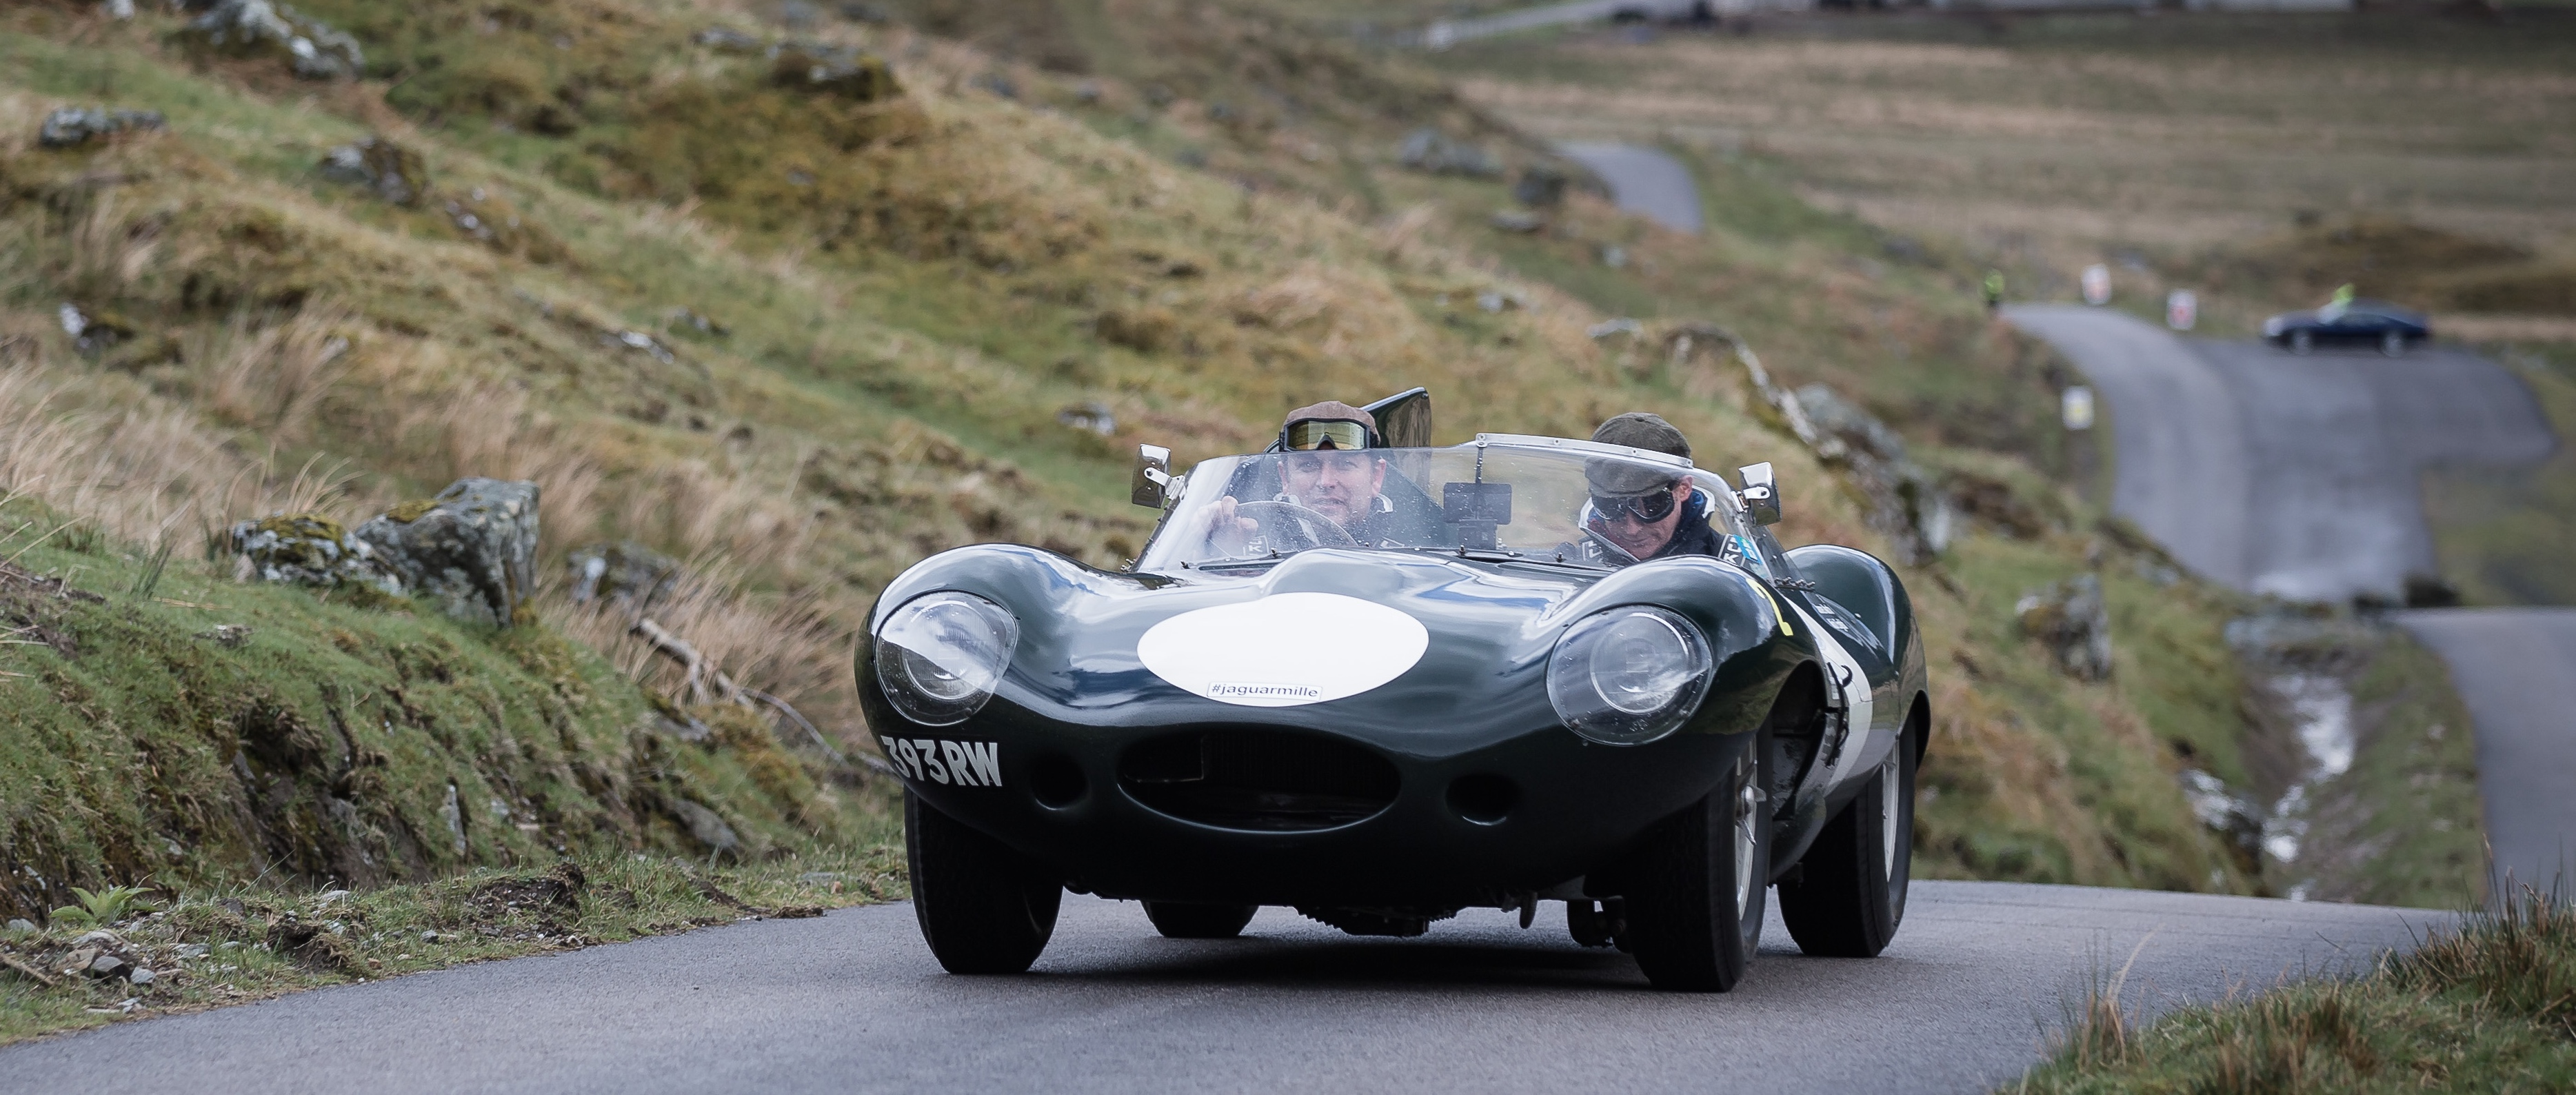 Jaguar preps for Italy with \'Mini Miglia\' in Scotland ...